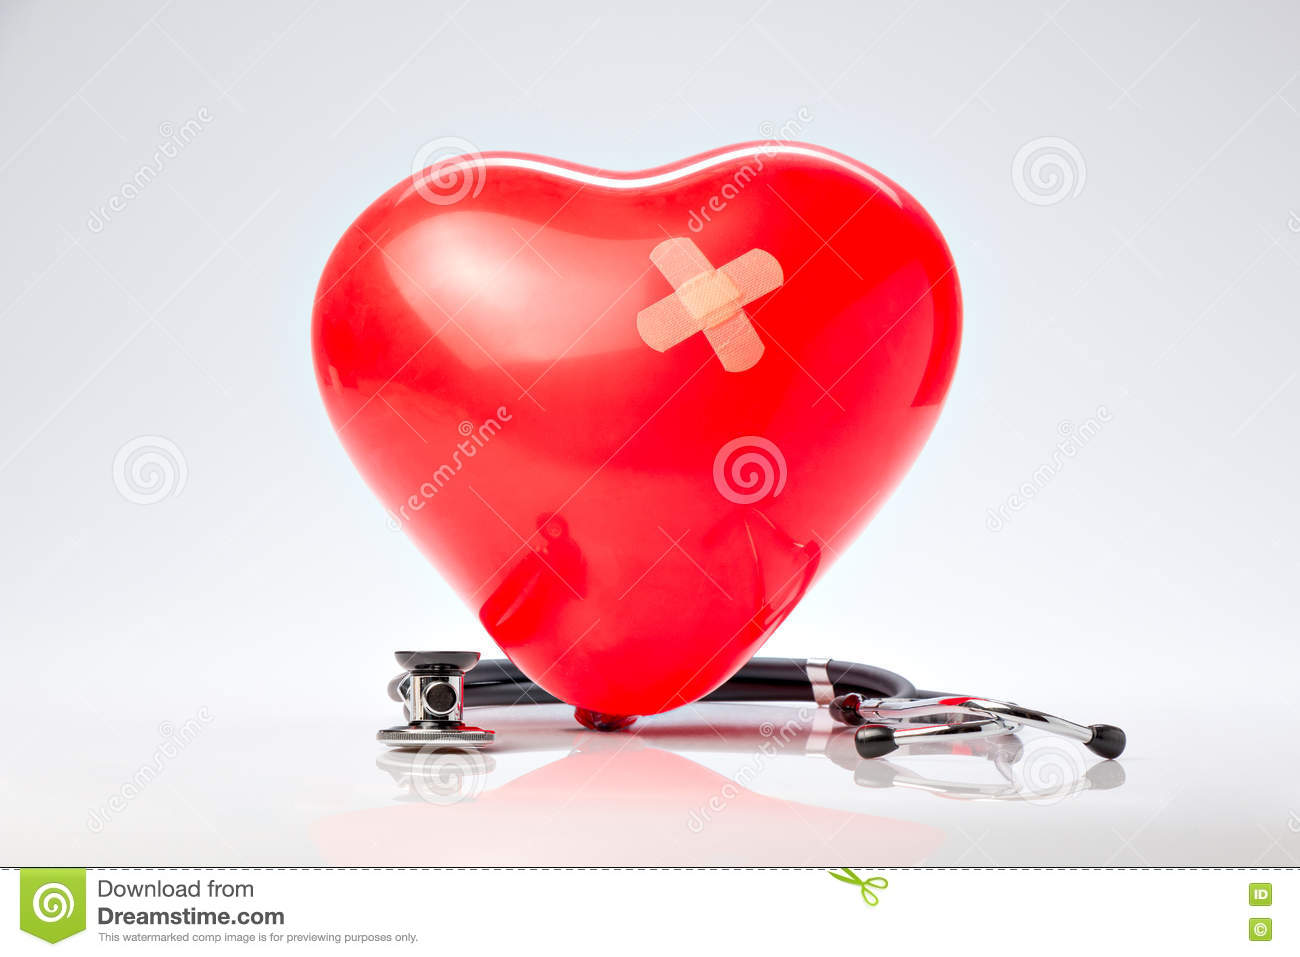 Hypertension, red balloon heart and stethoscope